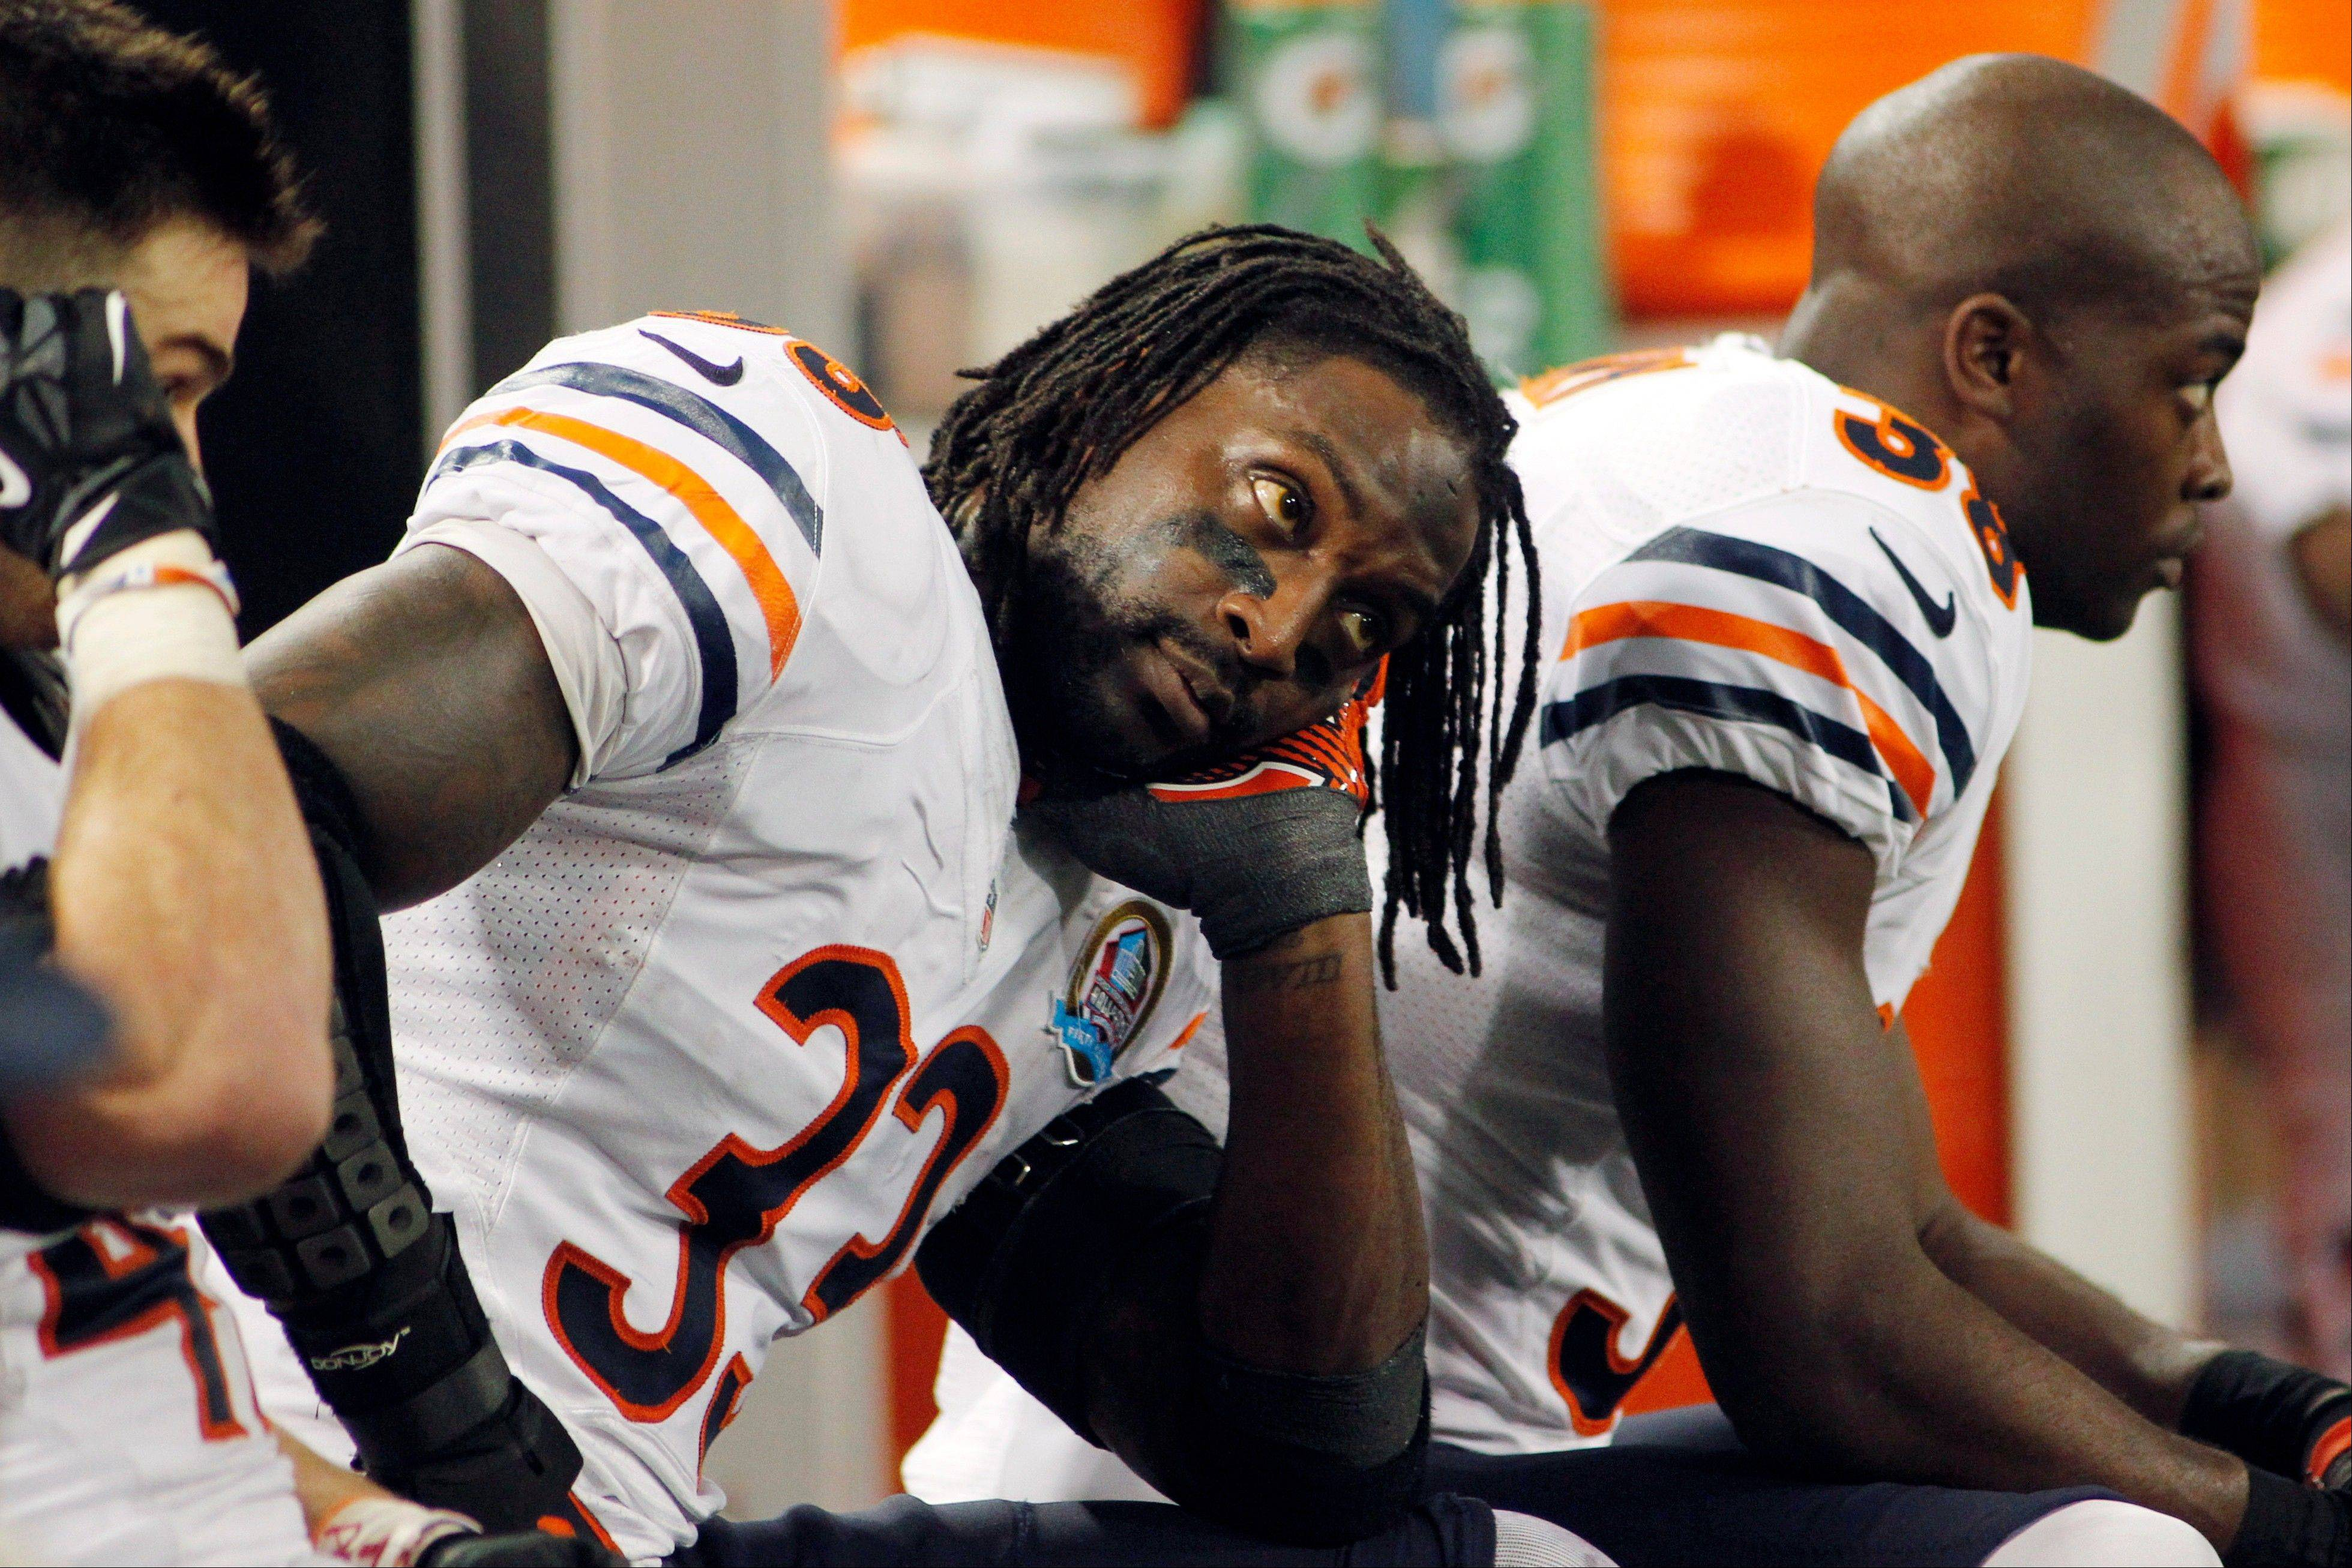 Bears cornerback Charles Tillman (33) sits on the bench during the second half of an NFL football game against the Minnesota Vikings, Sunday, Dec. 9, 2012, in Minneapolis. The Vikings won 21-14.